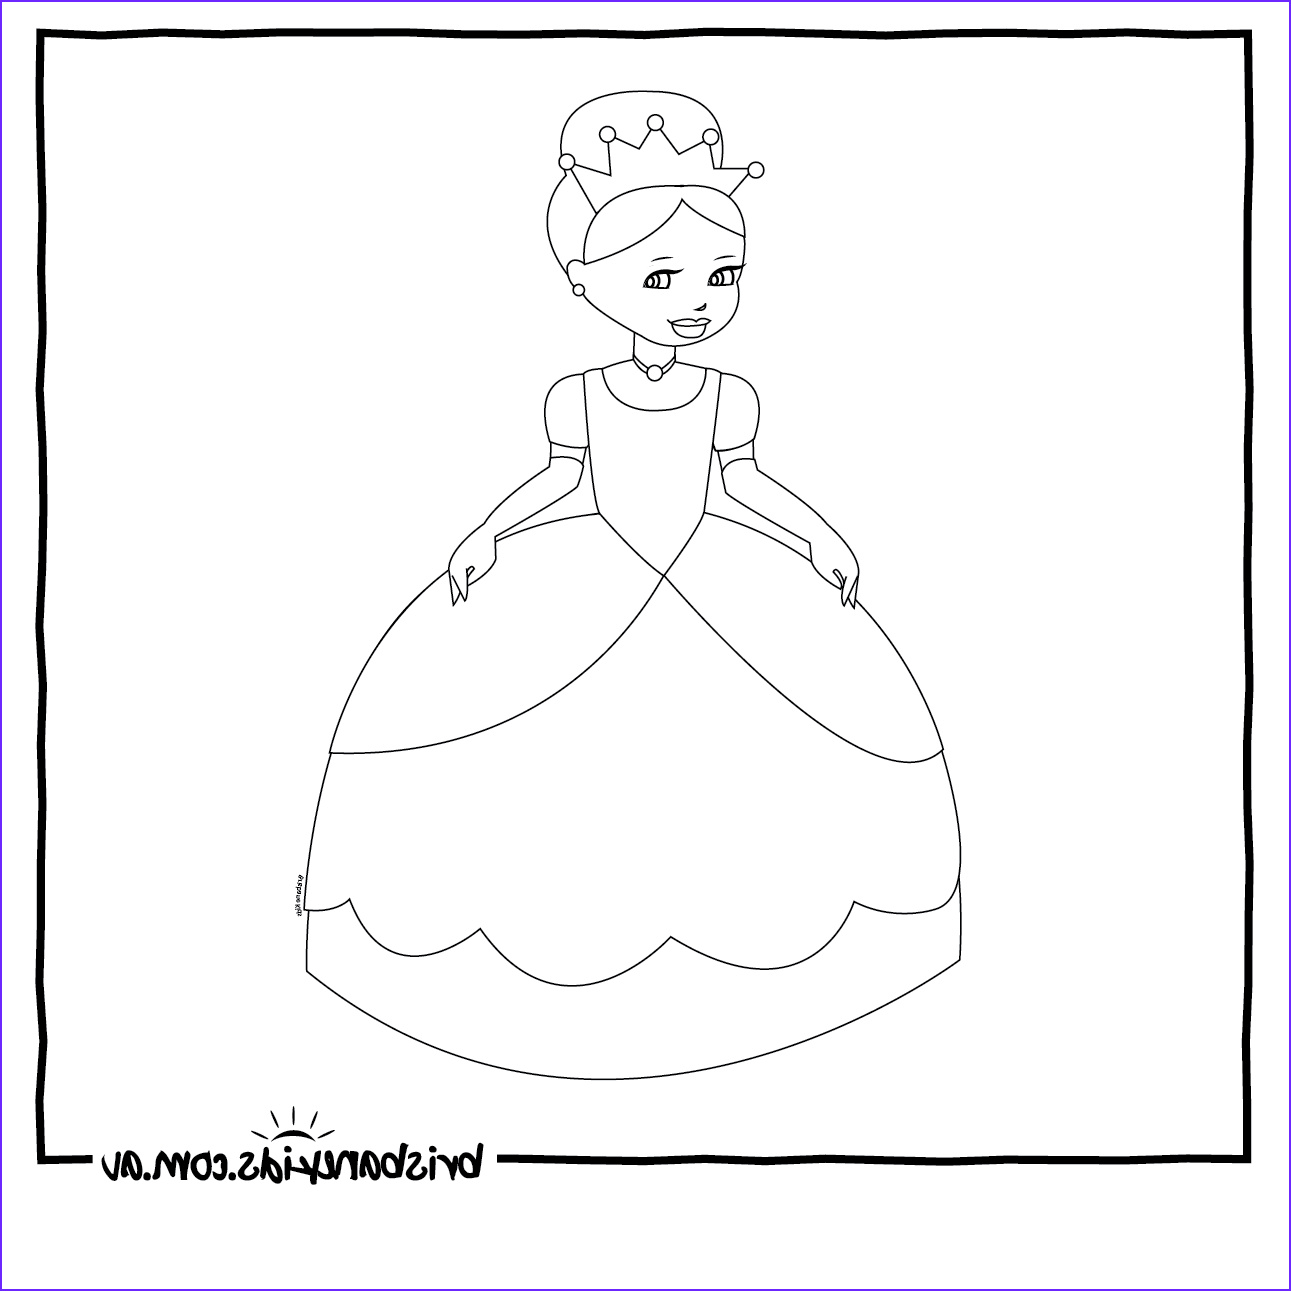 Fun Coloring Pictures Best Of Image Colouring In Printables for Kids Just for Fun • Brisbane